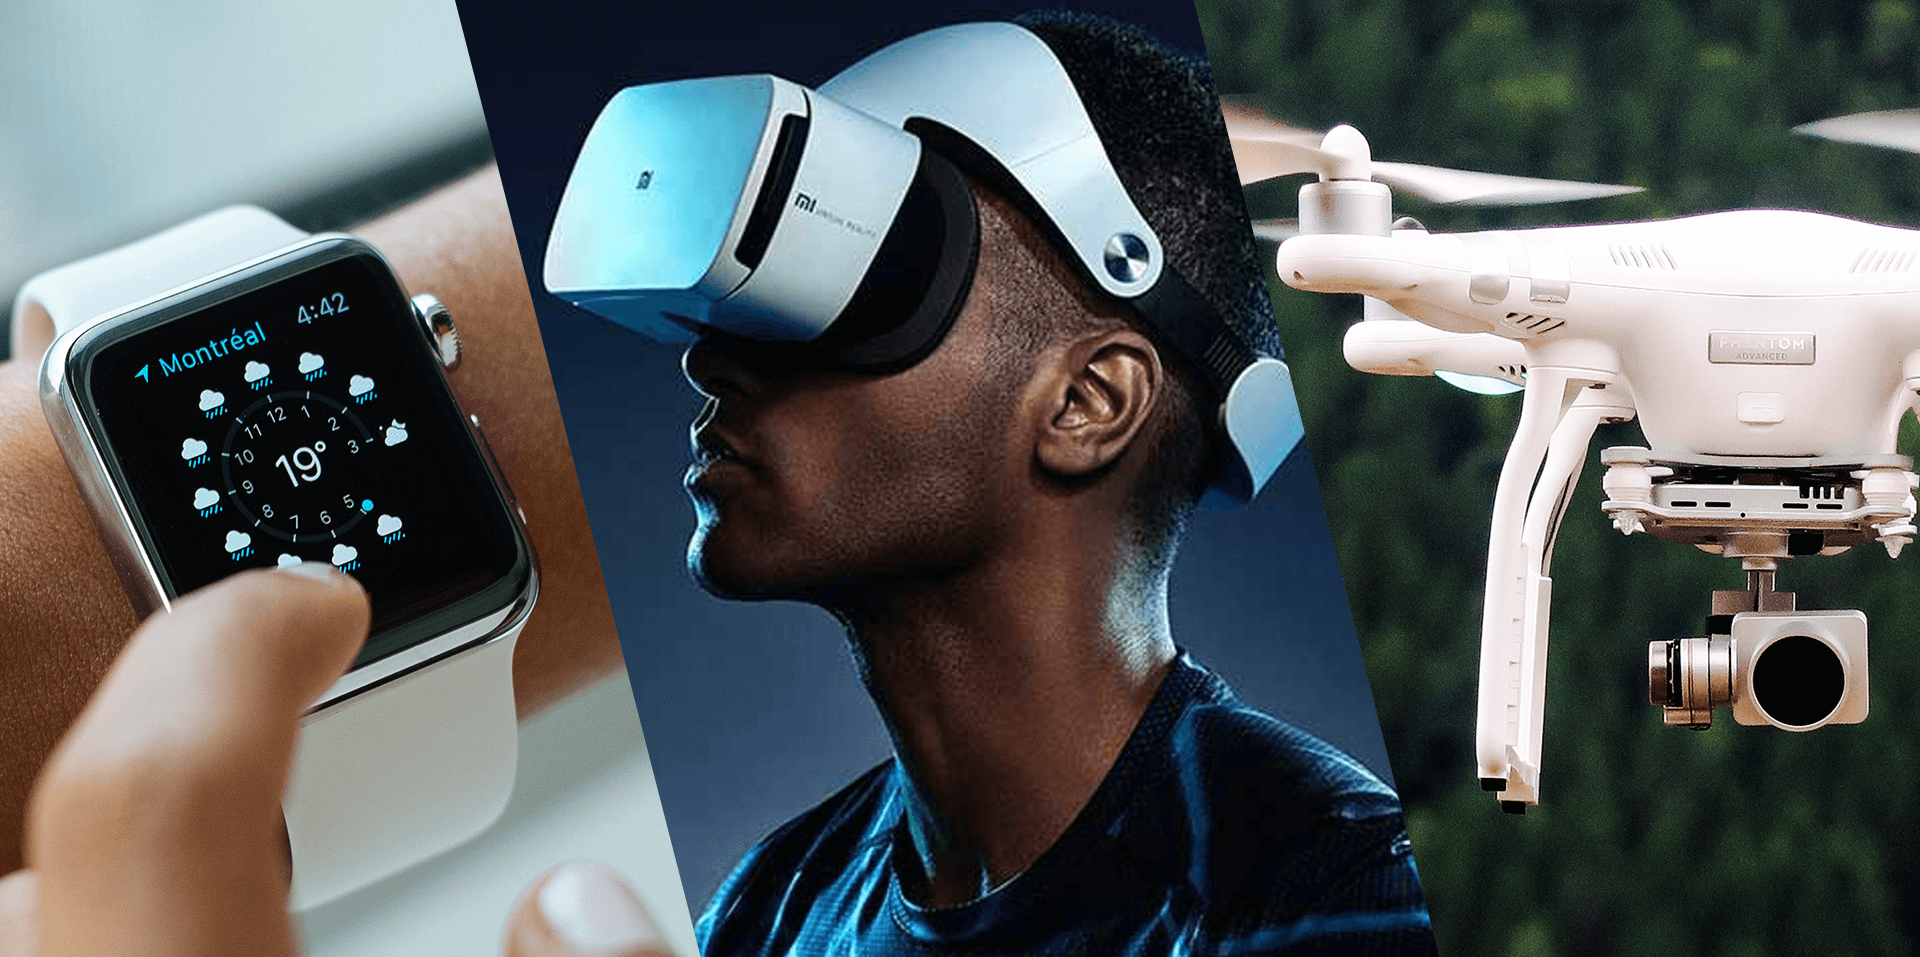 10 emerging technologies that will change the world